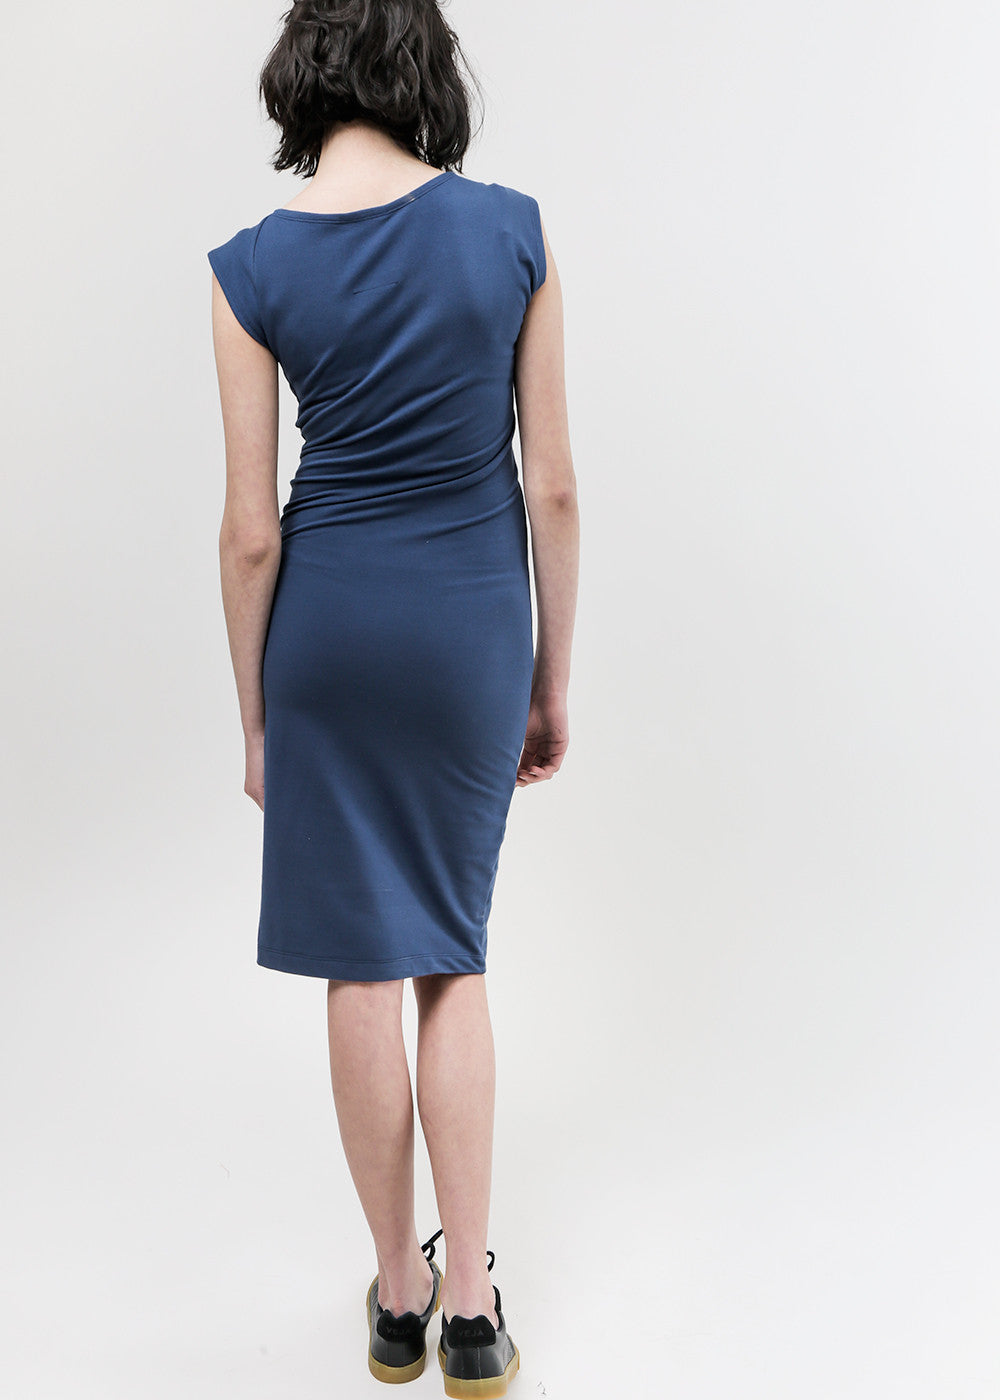 Study-NY Twist Dress — Shop sustainable fashion and slow fashion at New Classics Studios